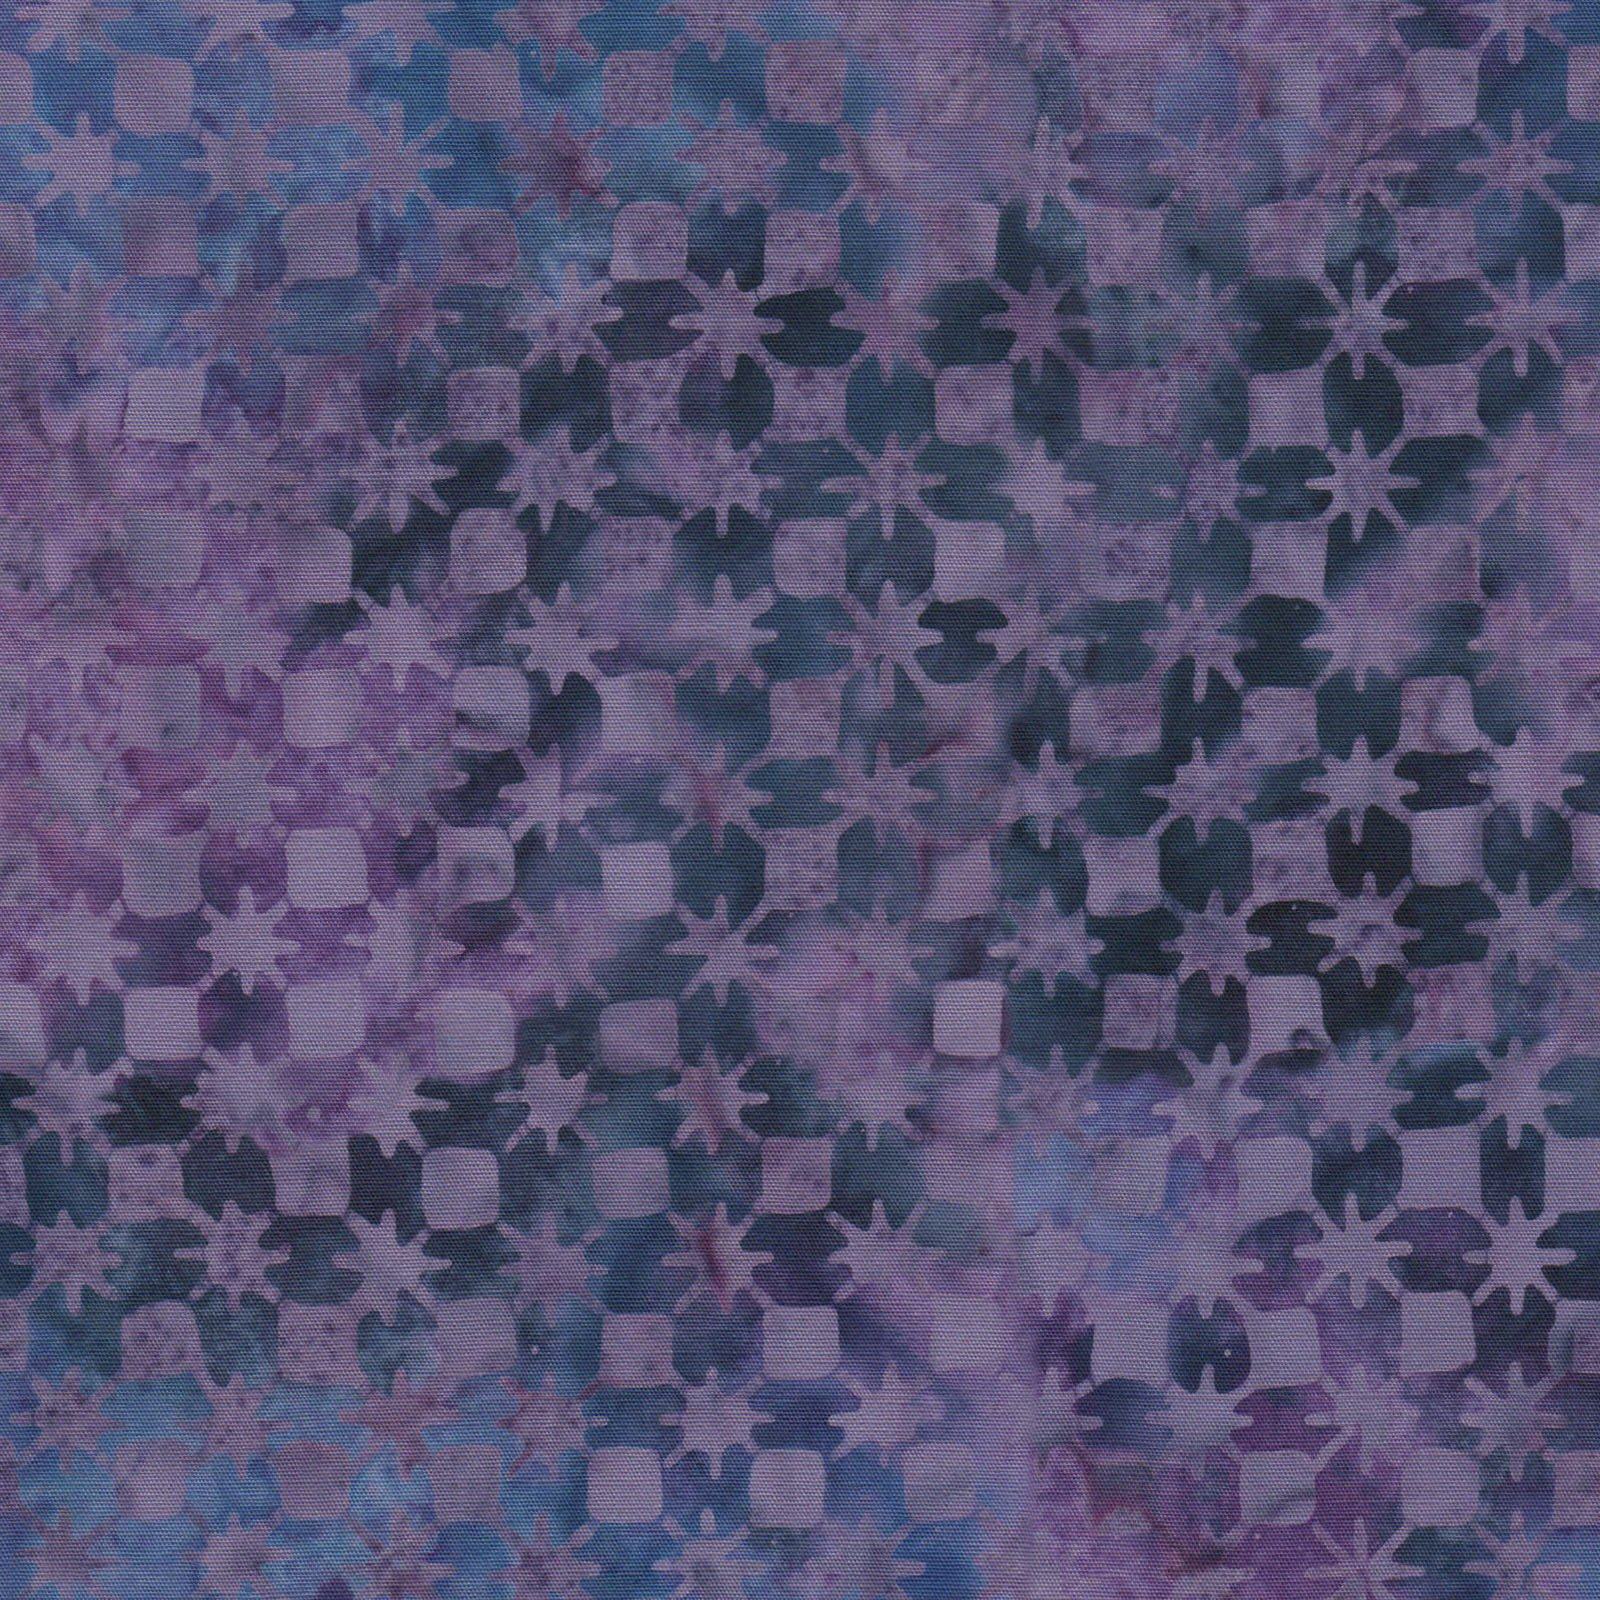 EESC-B55 BV - COLOR THERAPY BATIKS BY MAYWOOD STUDIO STARS BLUE/VIOLET - ARRIVING DECEMBER 2020